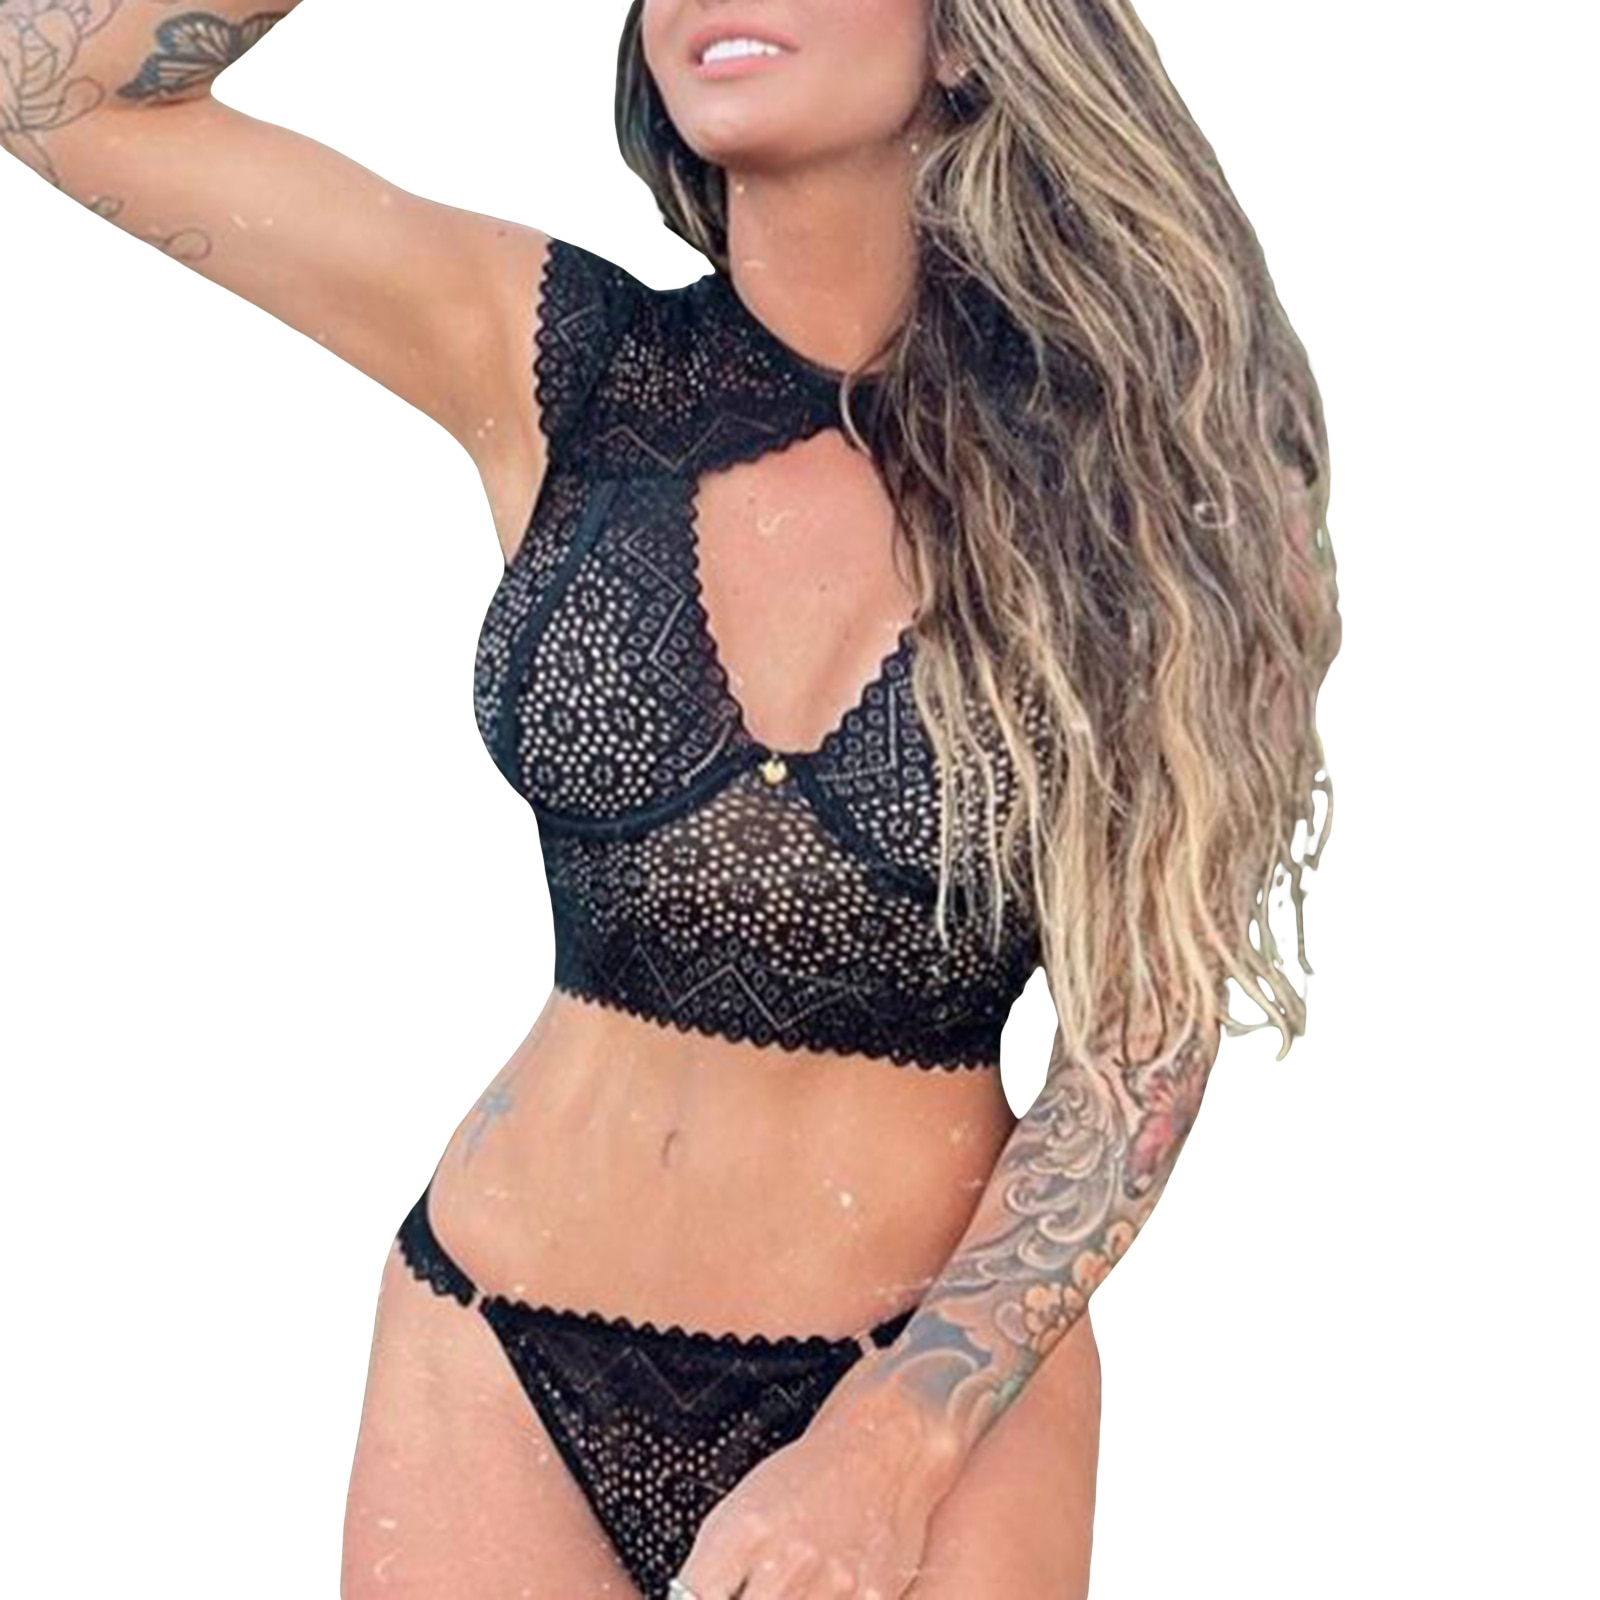 Women Hollow Out Lace Lingerie Sets, Cut Out Crew Neck Crop Bustier Crop Tops and Panty Thong 2 Pieces Babydoll Costume